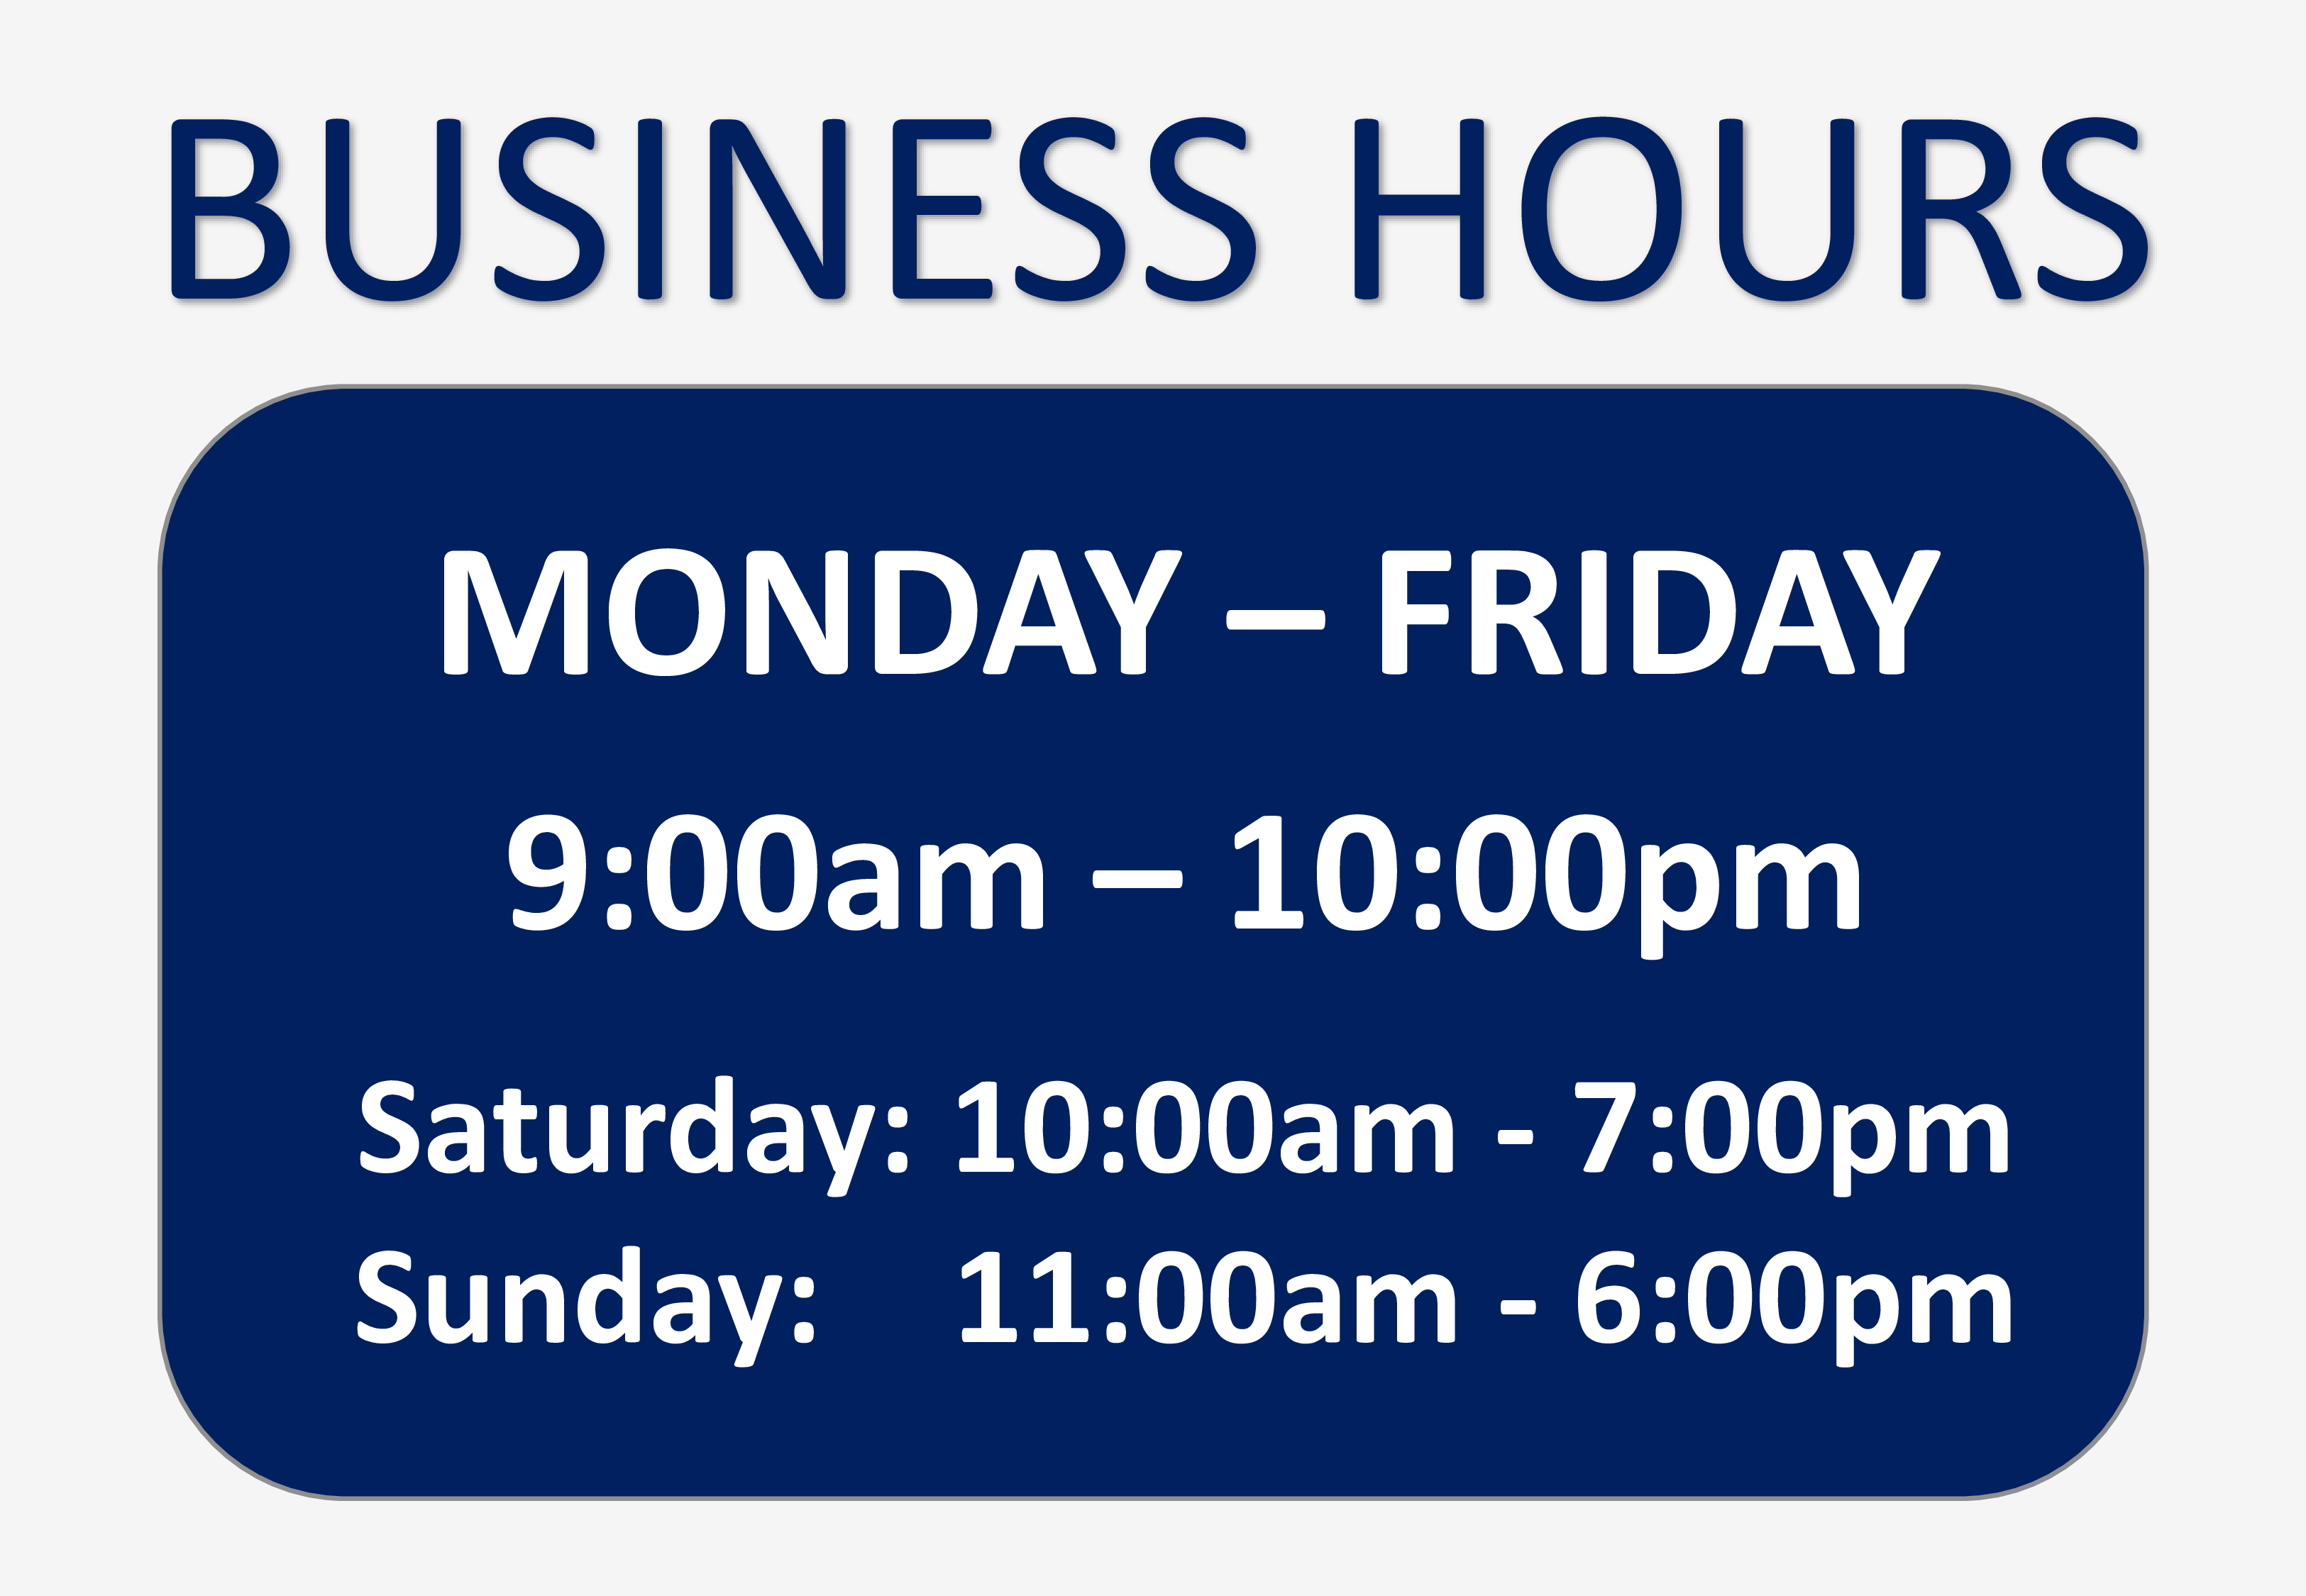 Free business hours sign templates at allbusinesstemplates business hours sign main image download template accmission Images